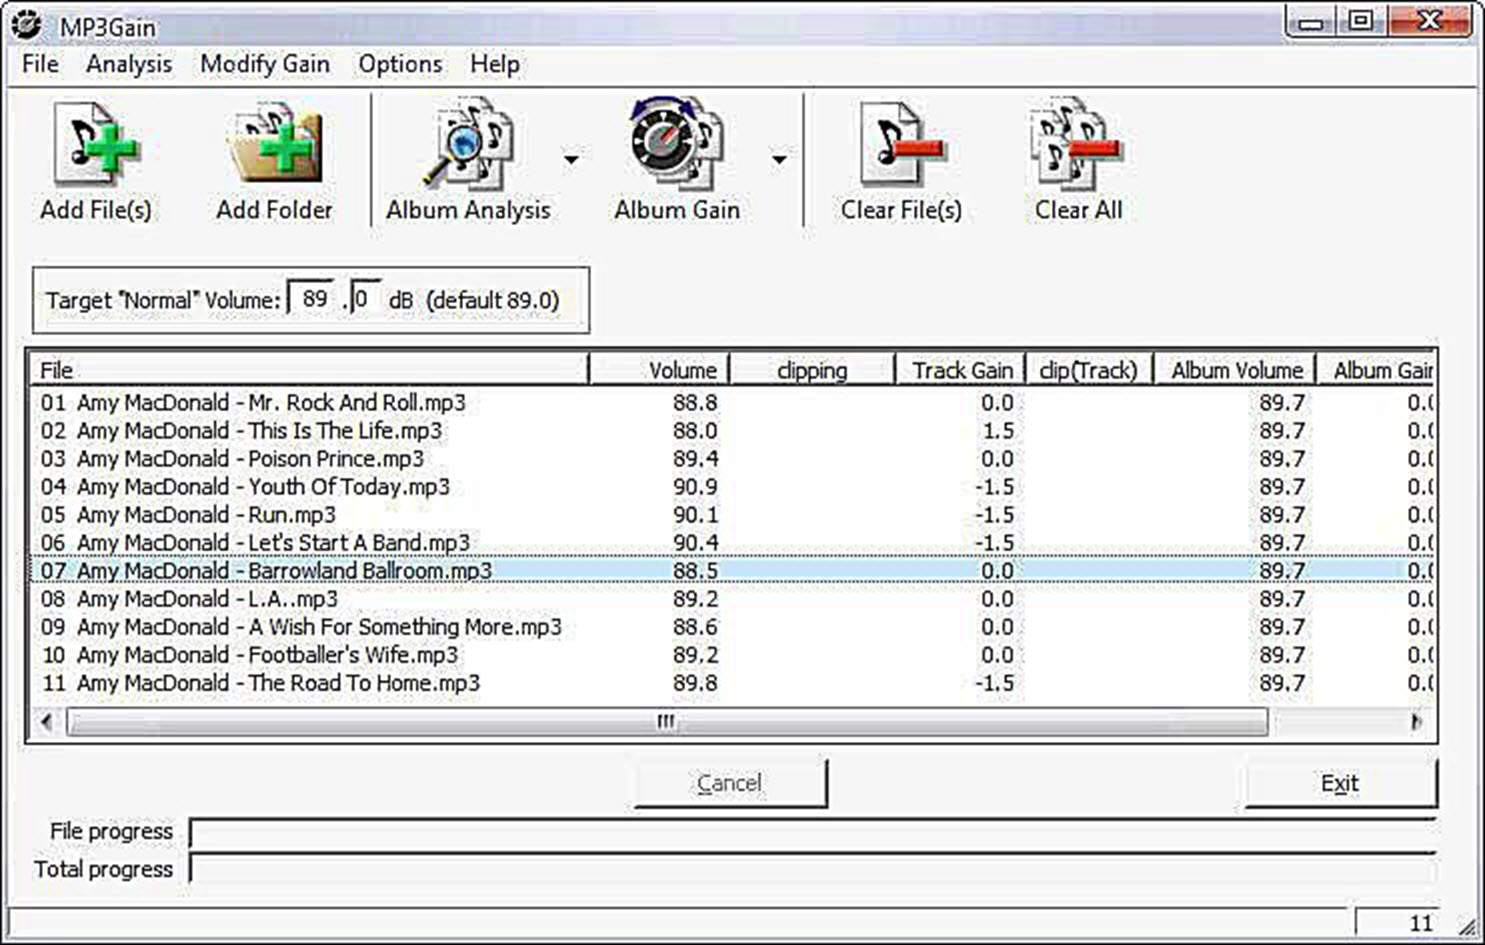 download mp3gain for windows